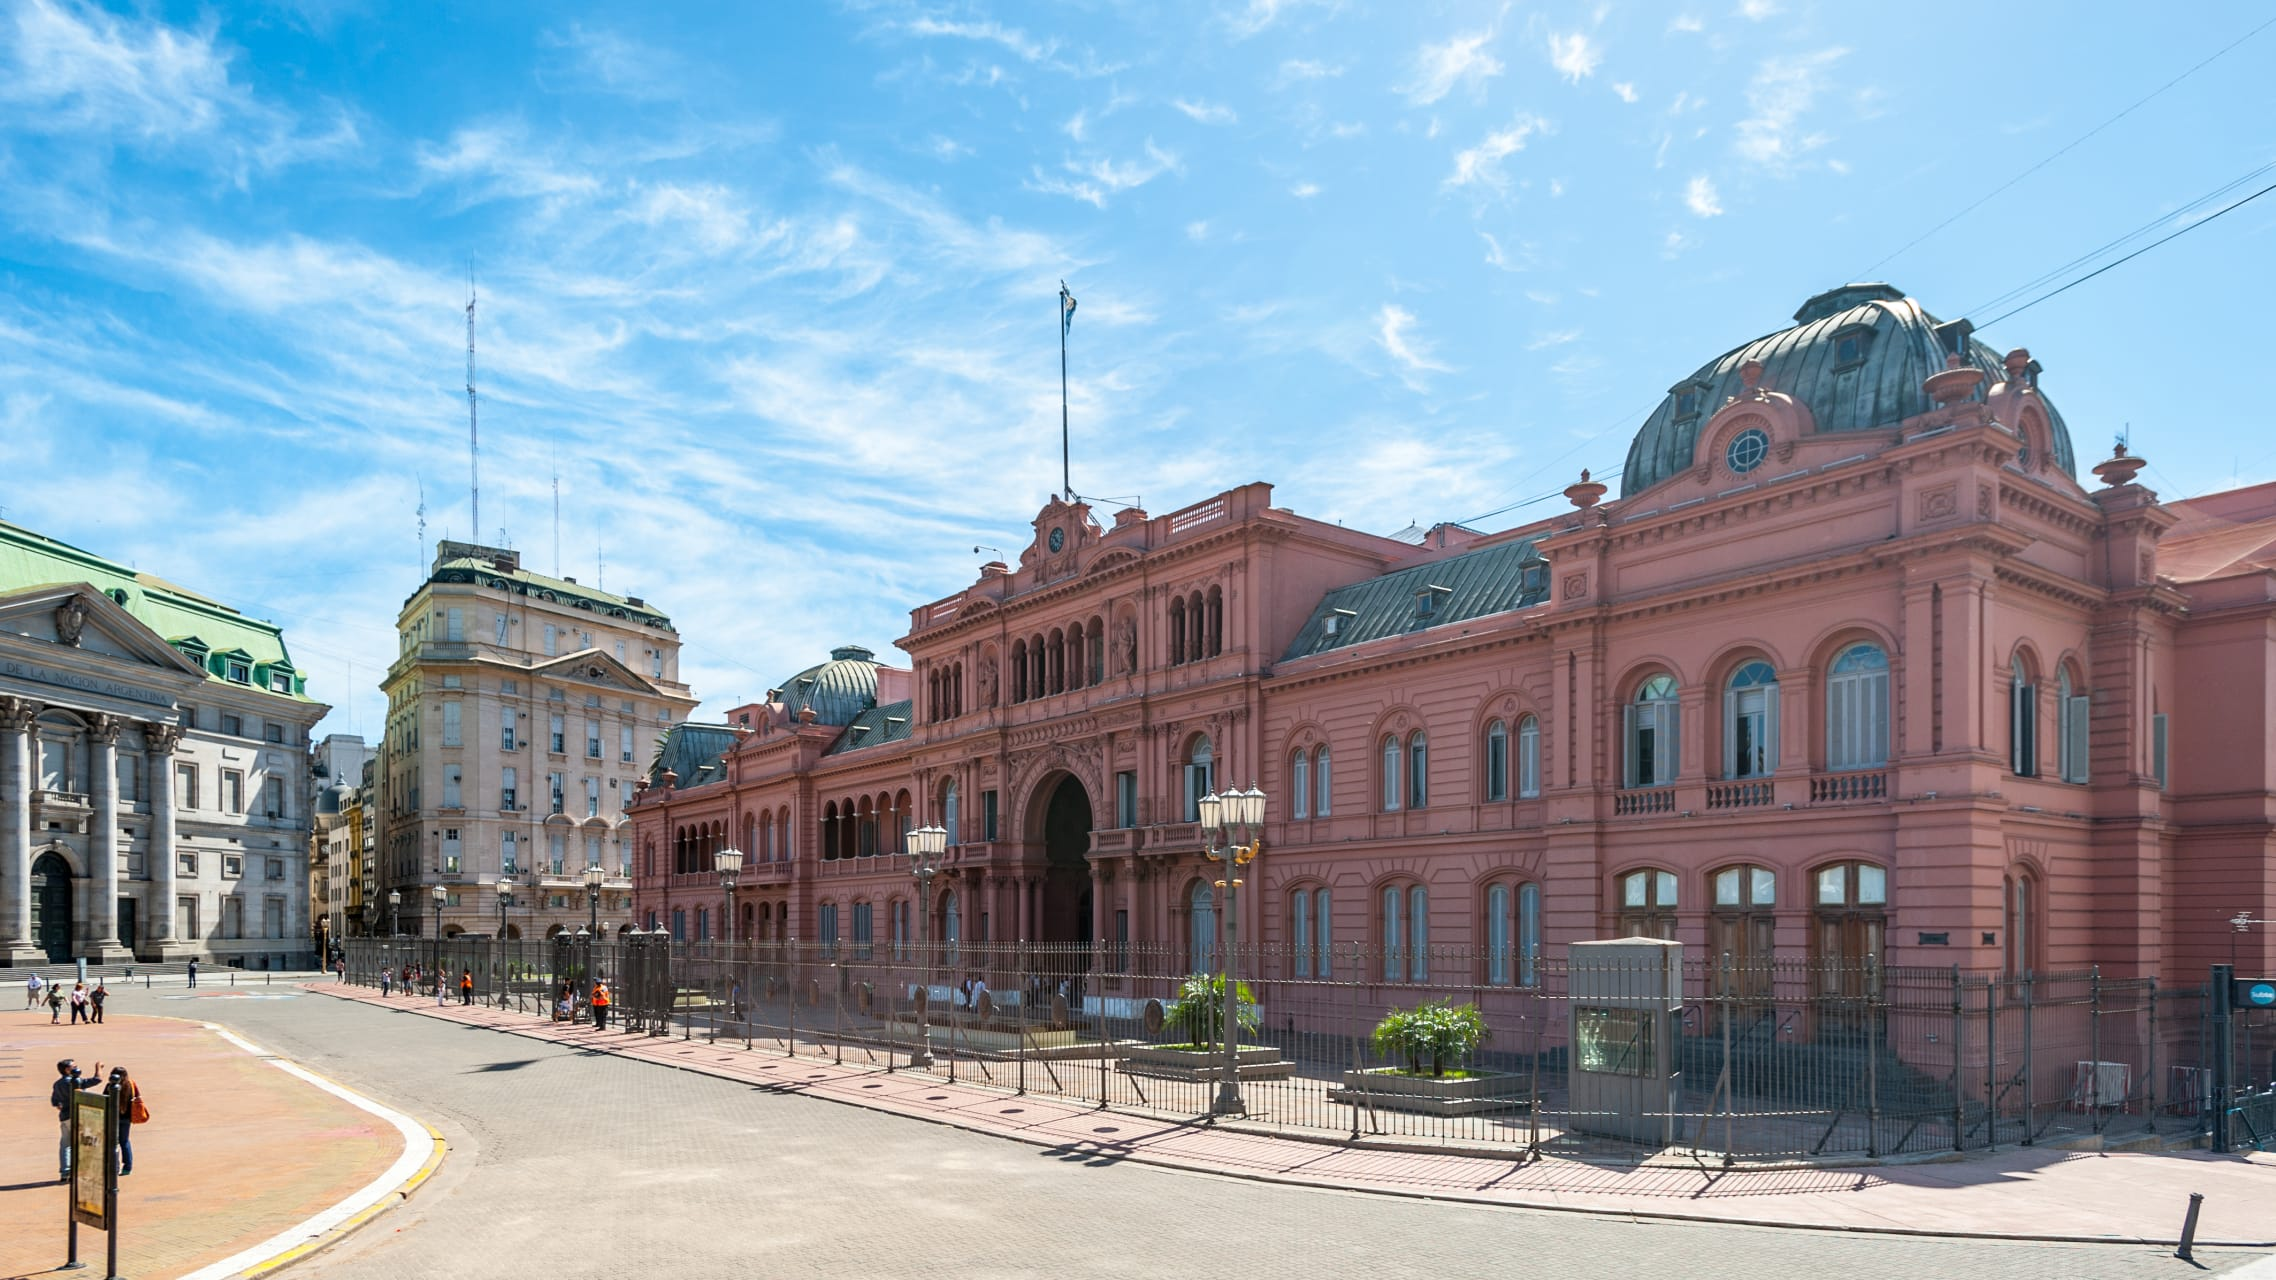 Buenos Aires - Buenos Aires: Plaza de Mayo: Visiting Pope Francis Cathedral and Evita's Balcony